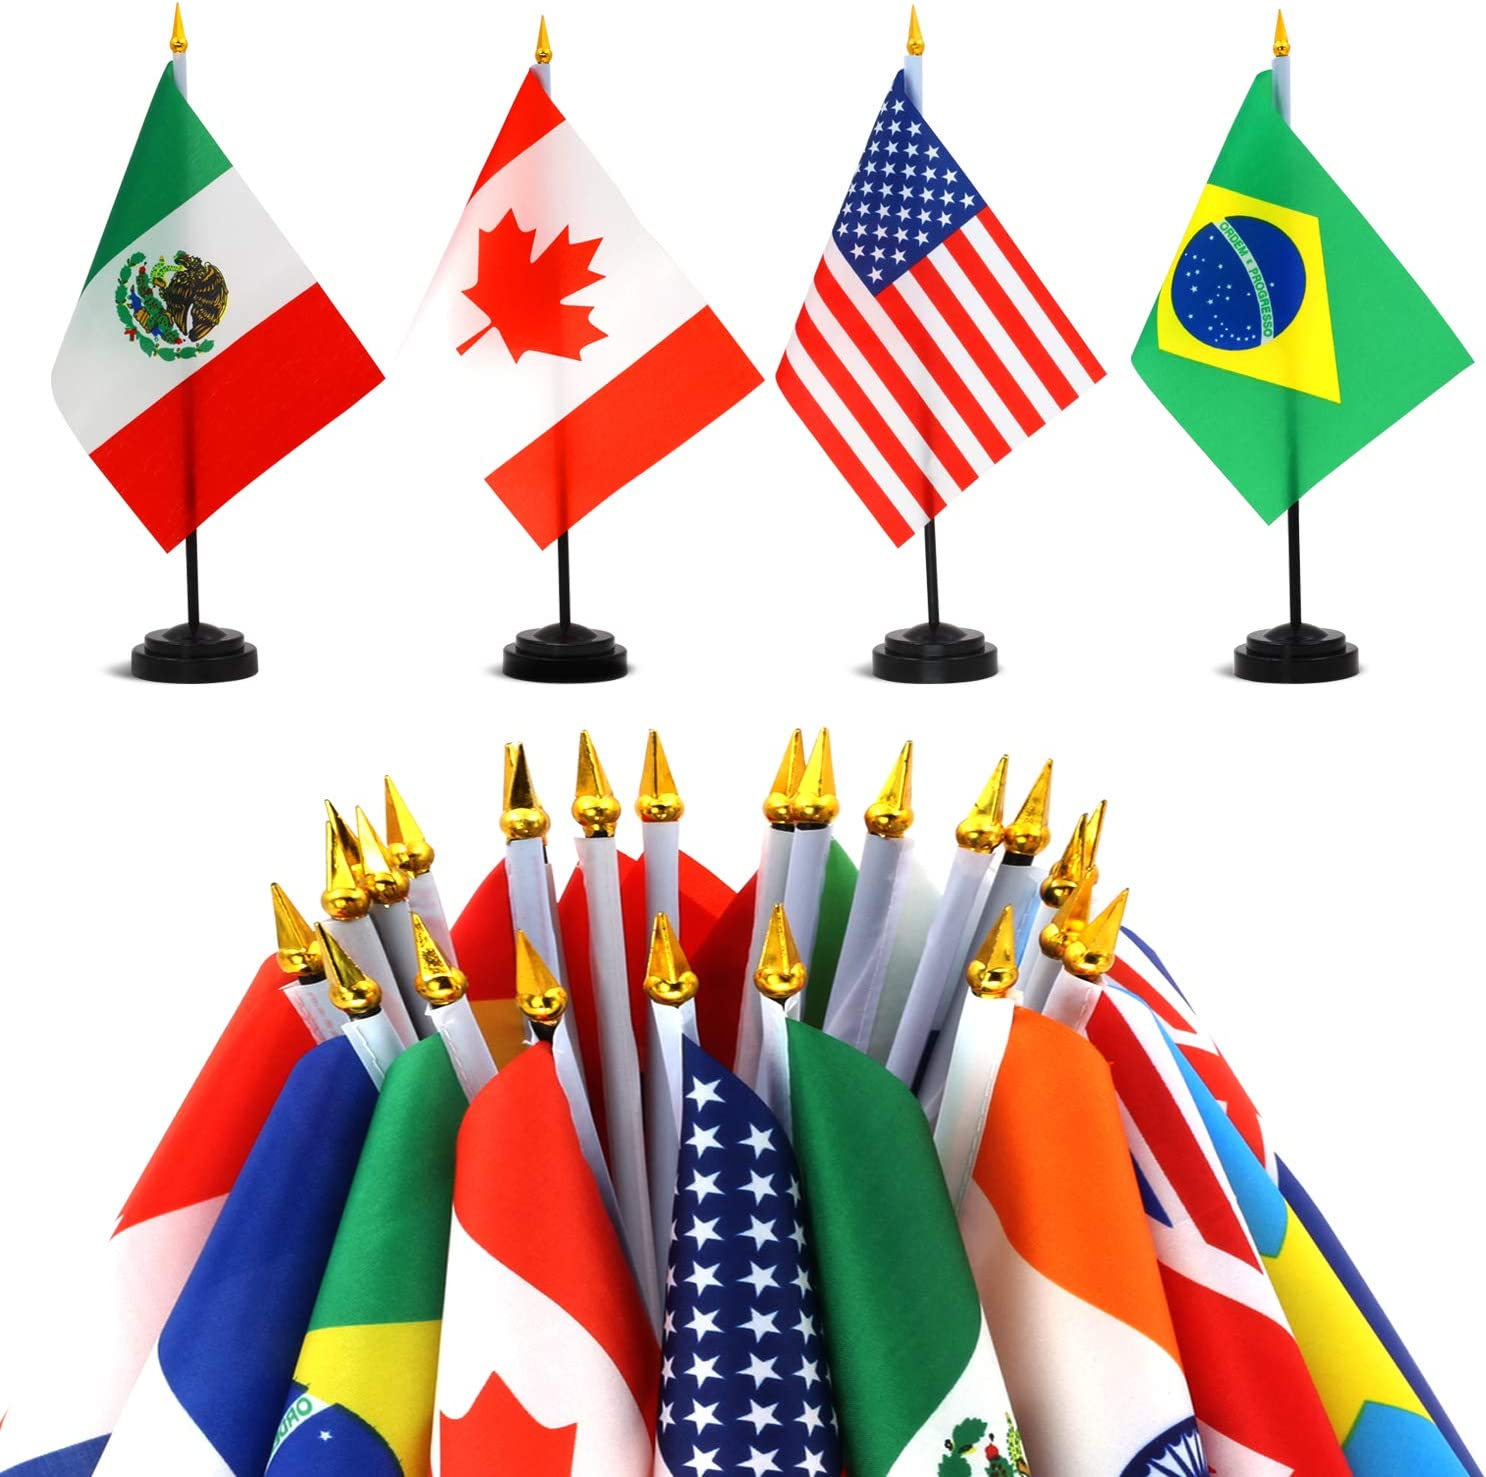 "Anley 24 Countries Deluxe Desk Flags Set - 7.5 x 5.5 Inches Miniature American US Desktop Flag with 12.5"" Black Pole - Vivid Color and Fade Resistant - Come with Black Base and Golden Top"